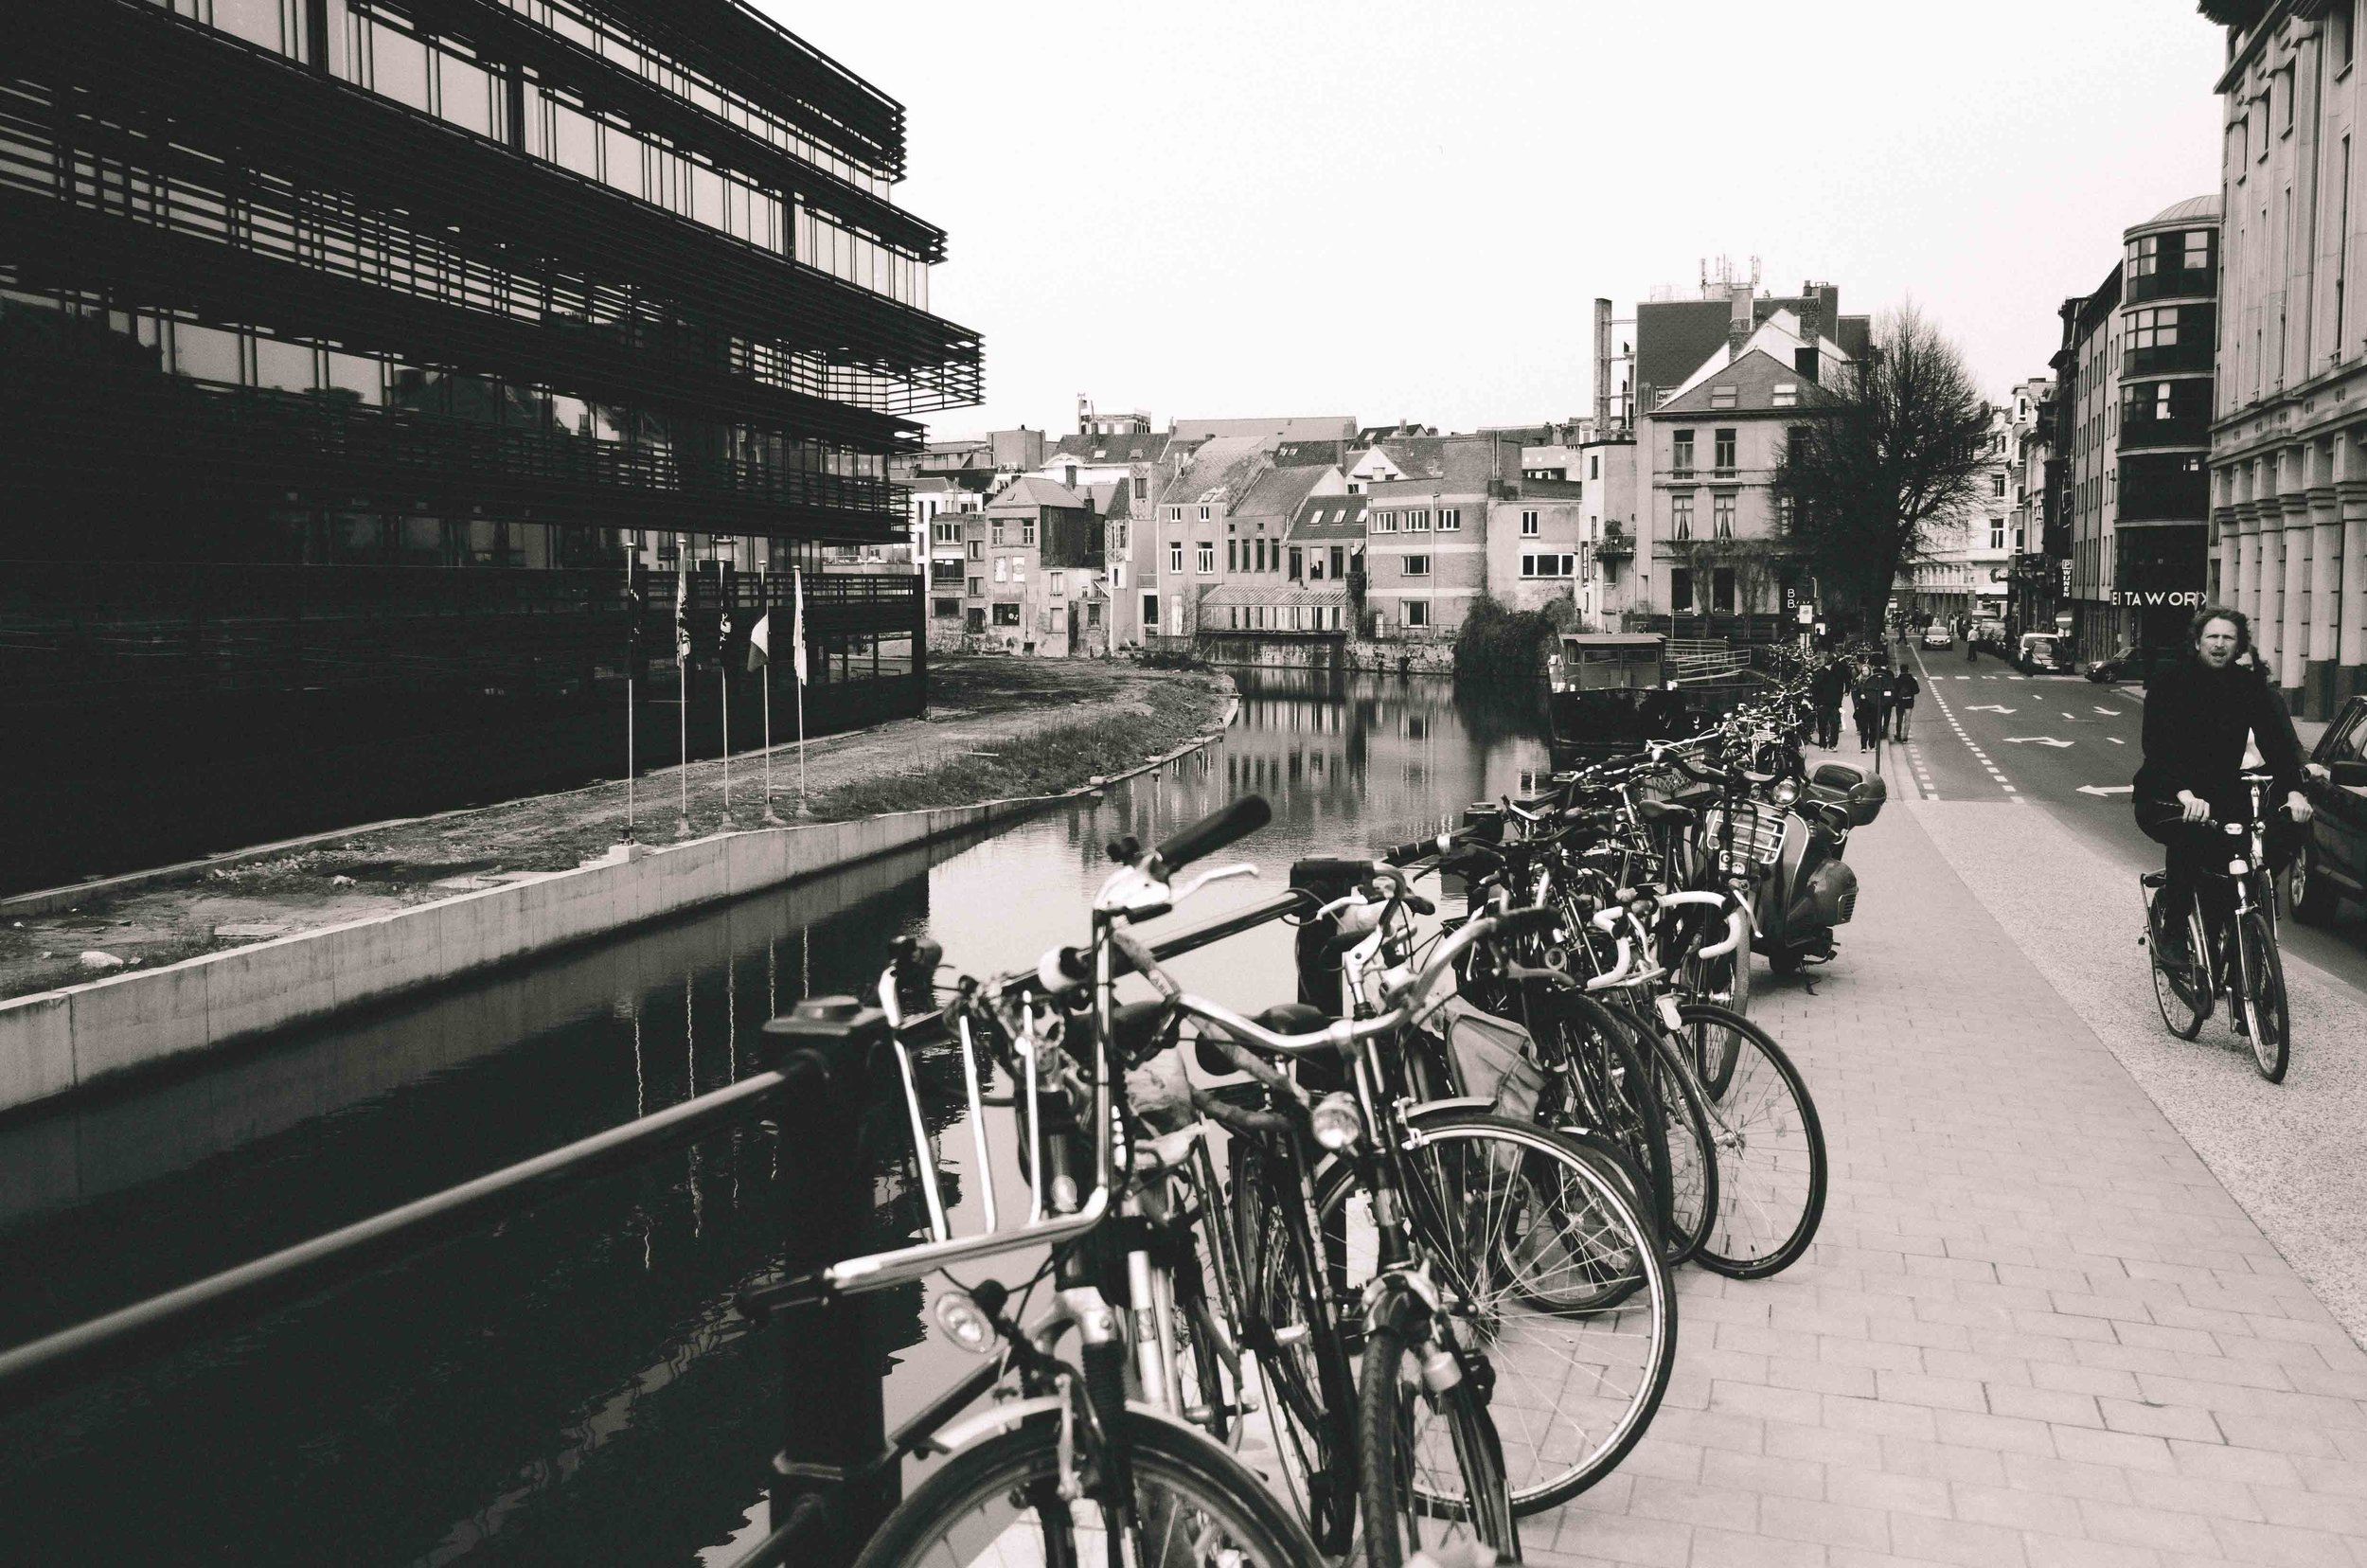 De Krook (left) bordering the canal in the city center